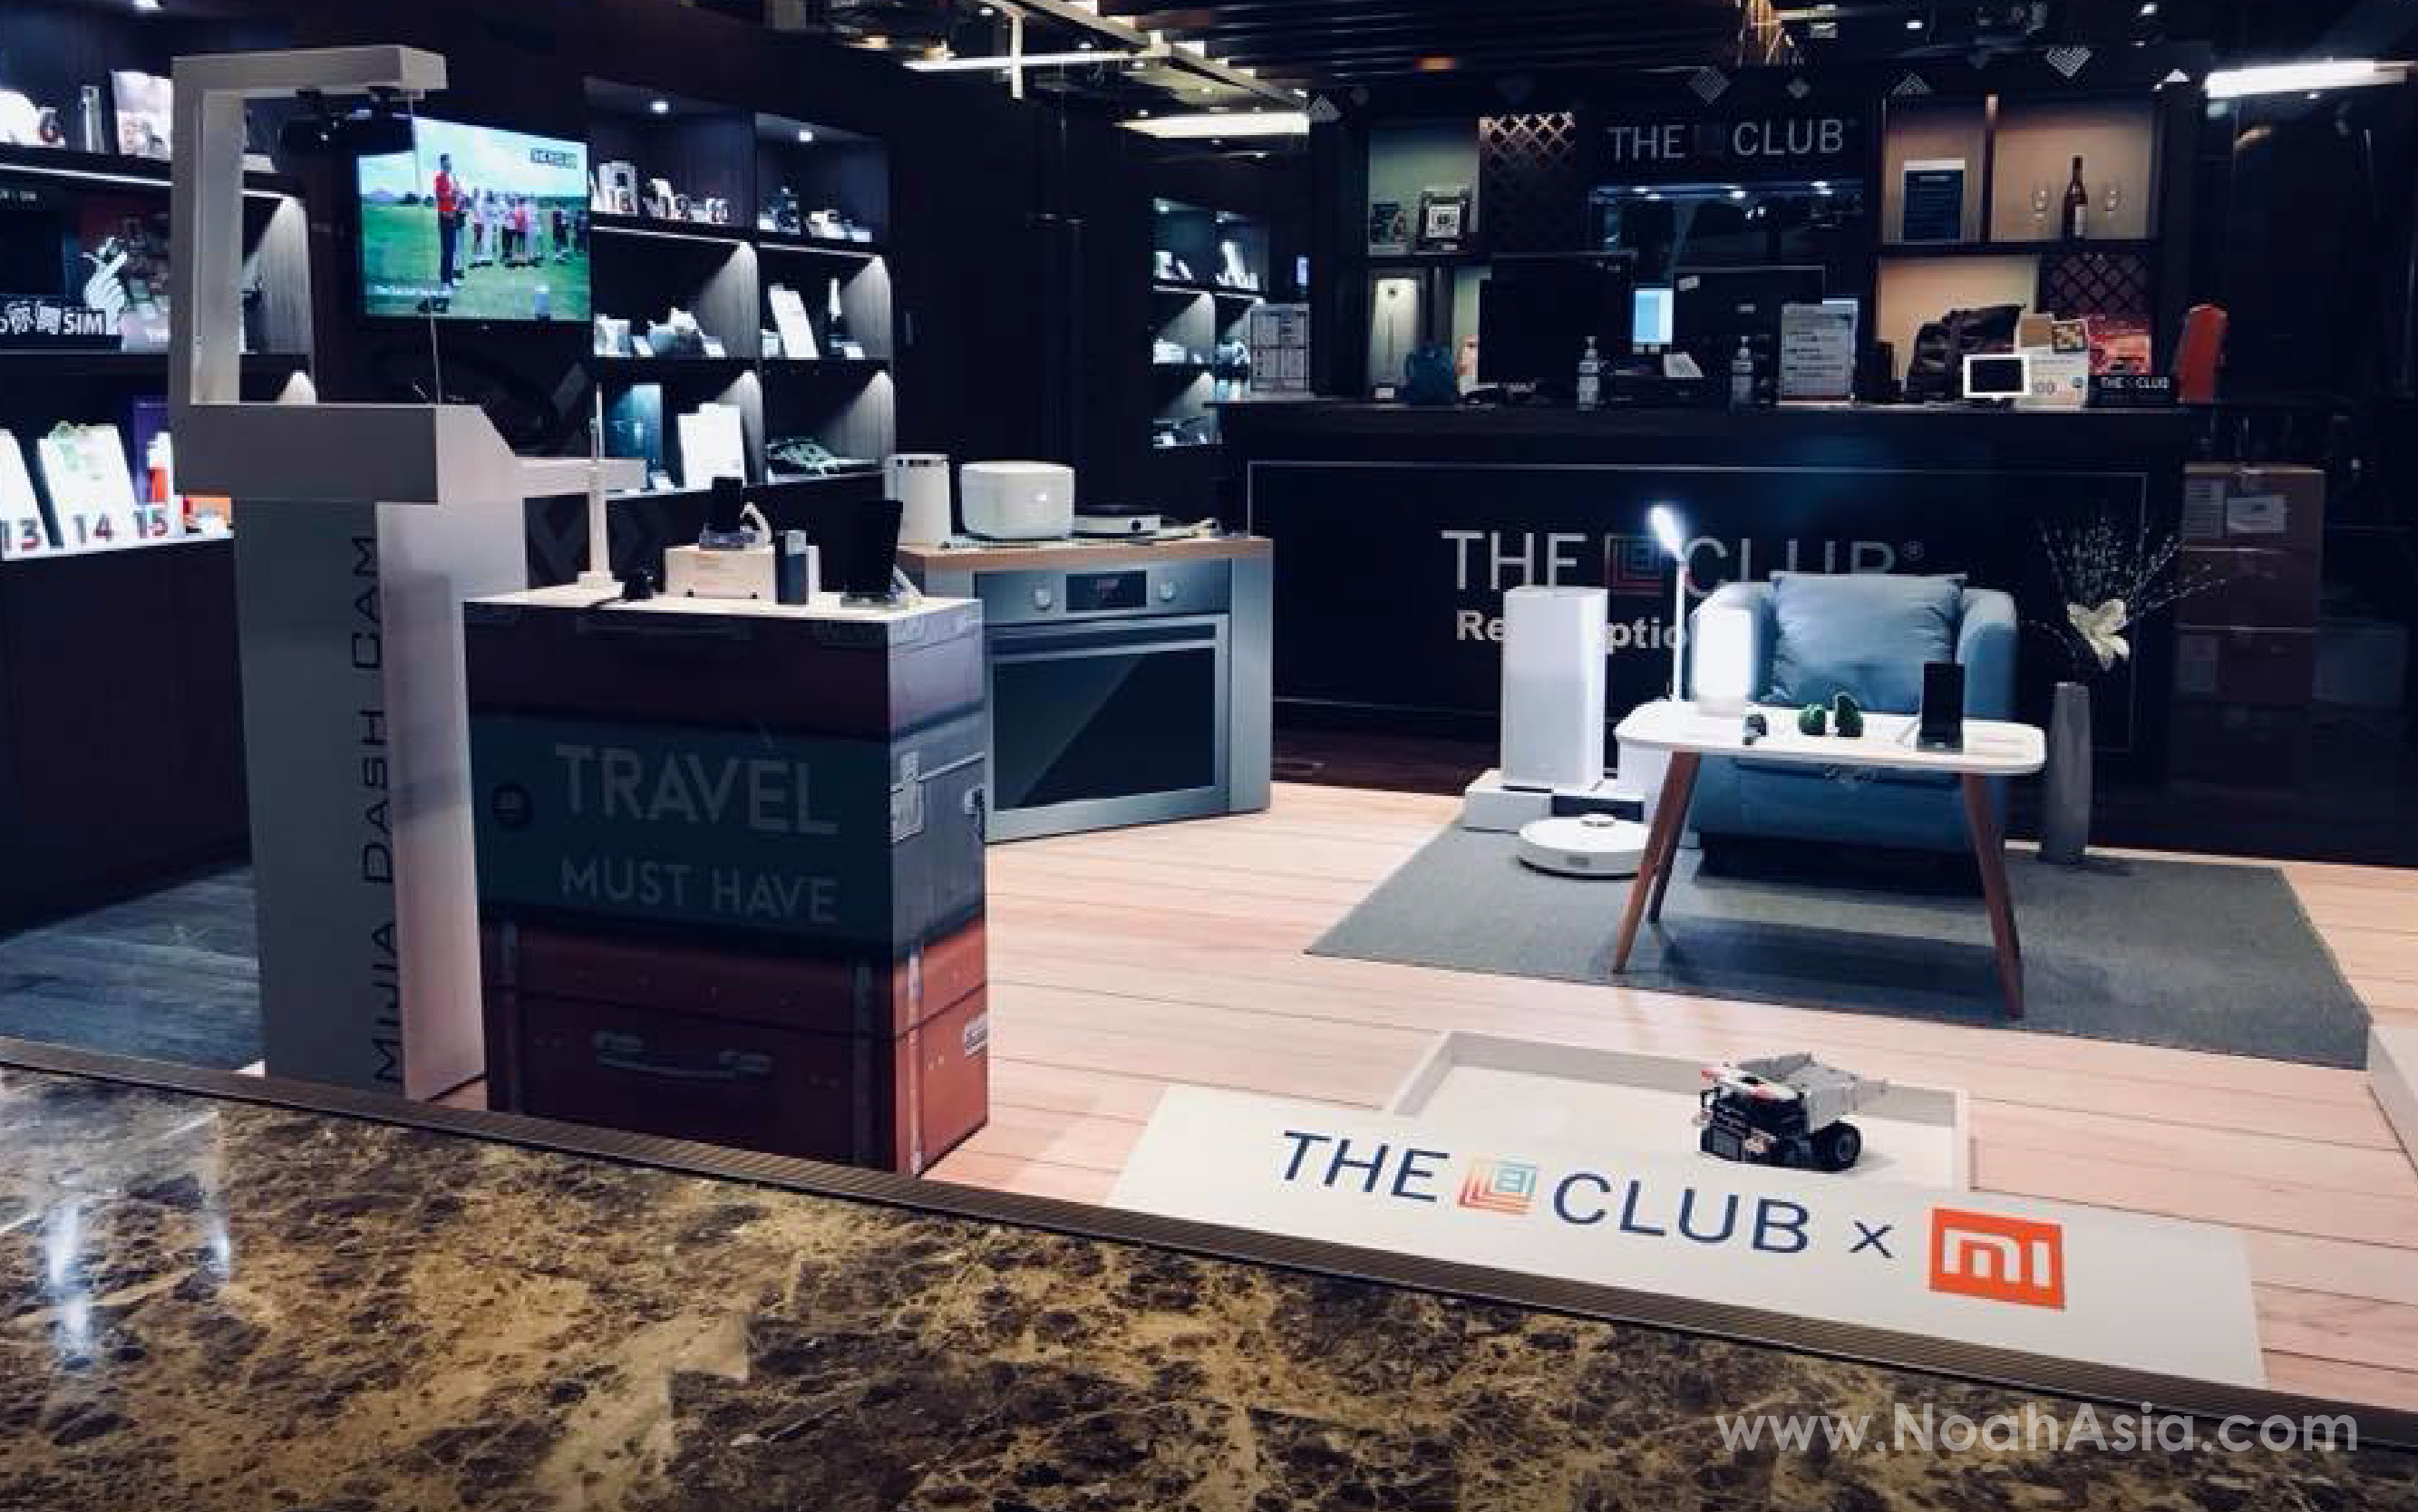 Xiaomi x The Club at 1010 (Central)